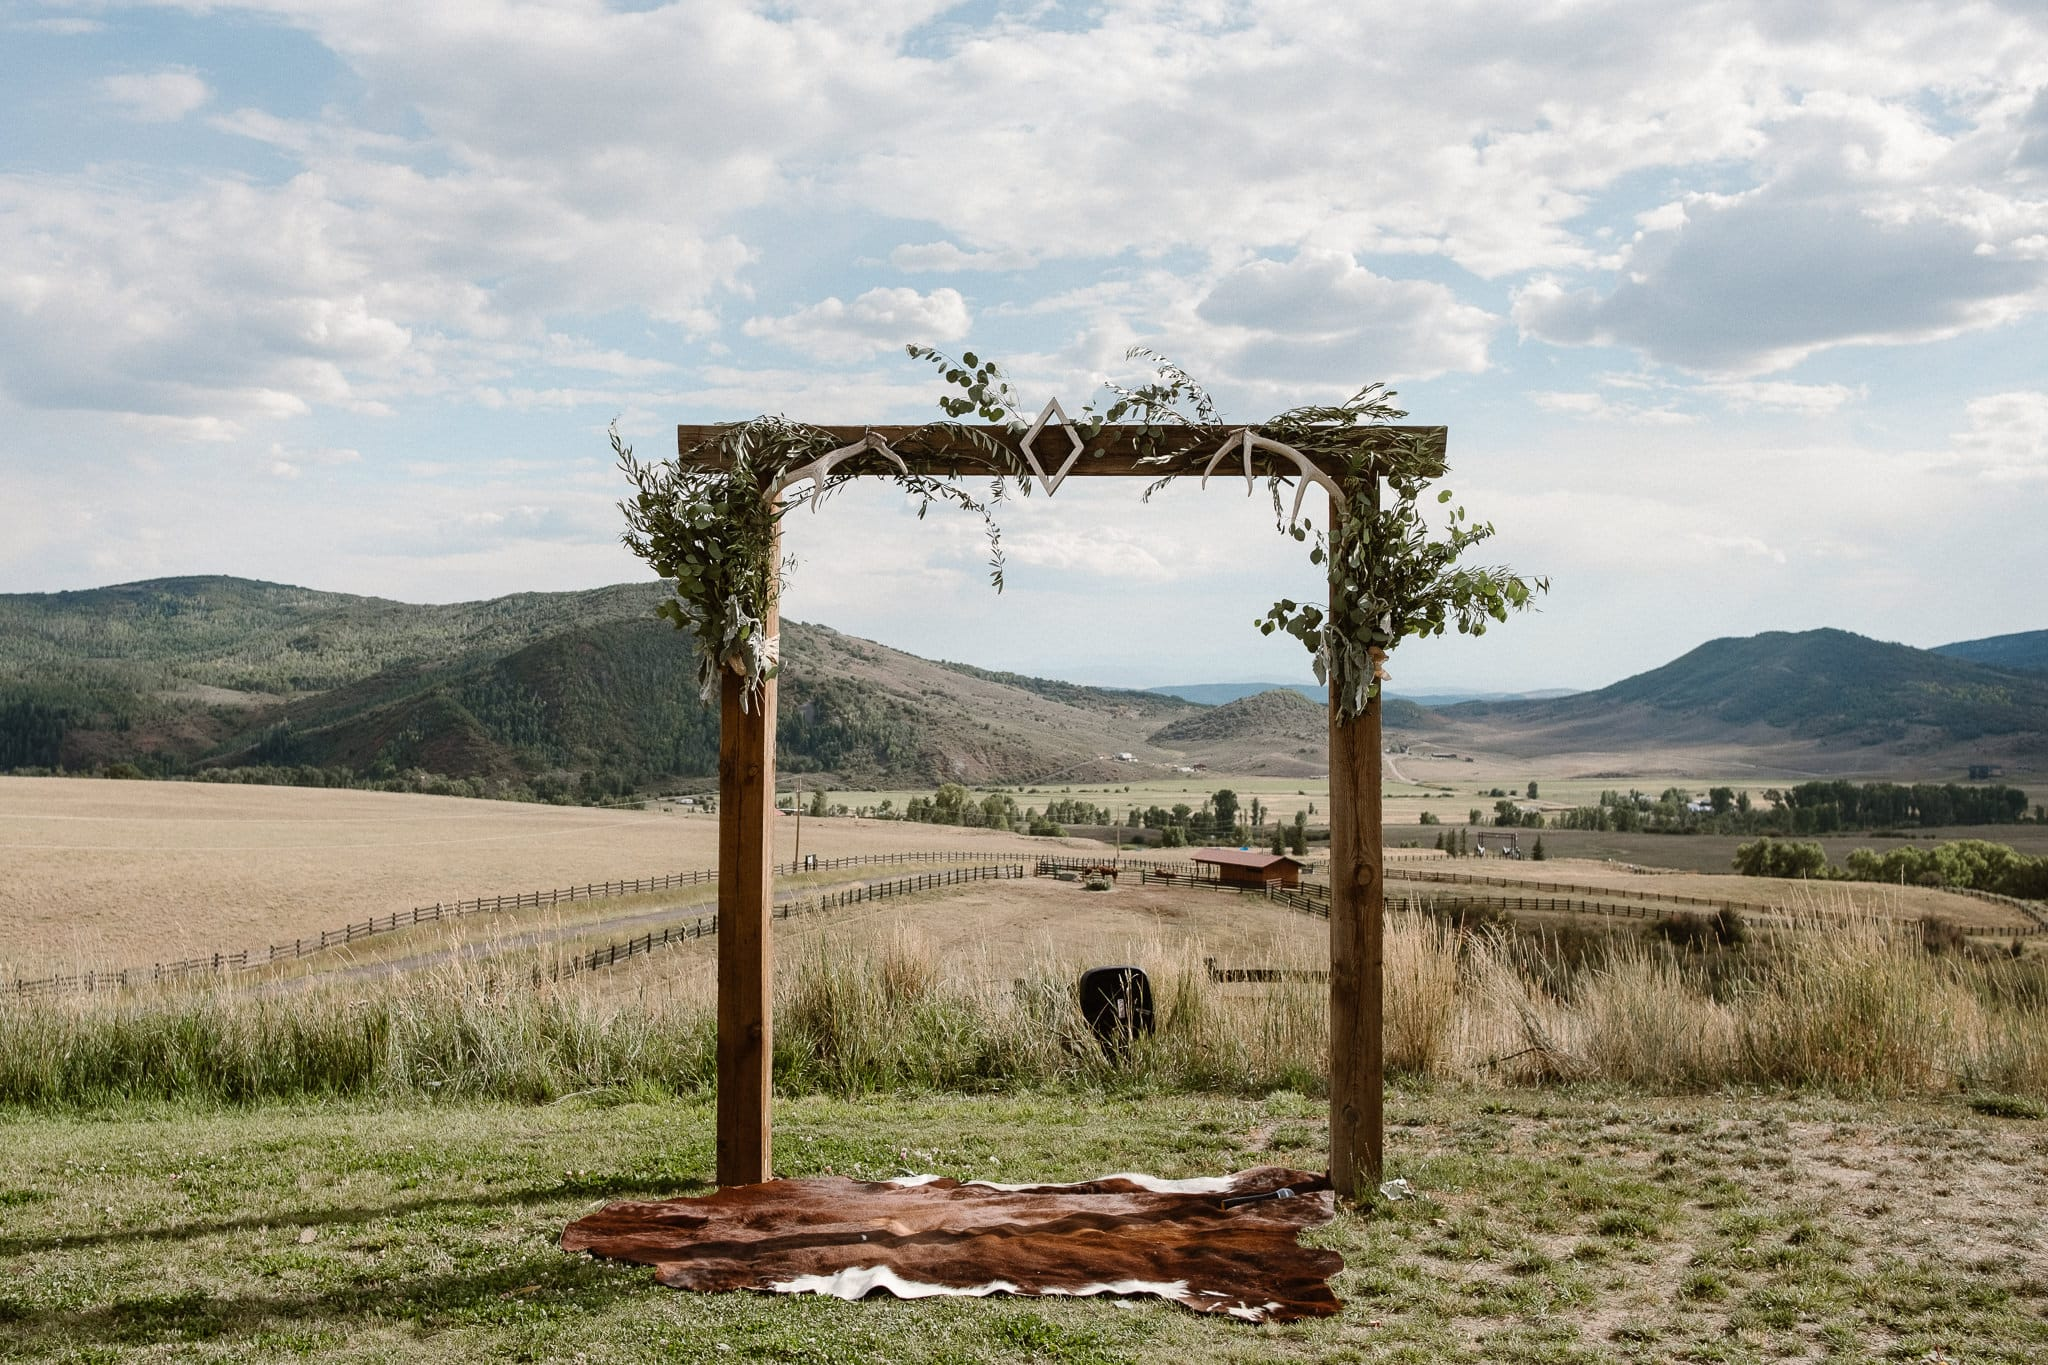 Steamboat Springs wedding photographer, La Joya Dulce wedding, Colorado ranch wedding venues, ceremony site with mountain views, wedding ceremony with hay bales, ceremony aisle with rugs, cowhide rug